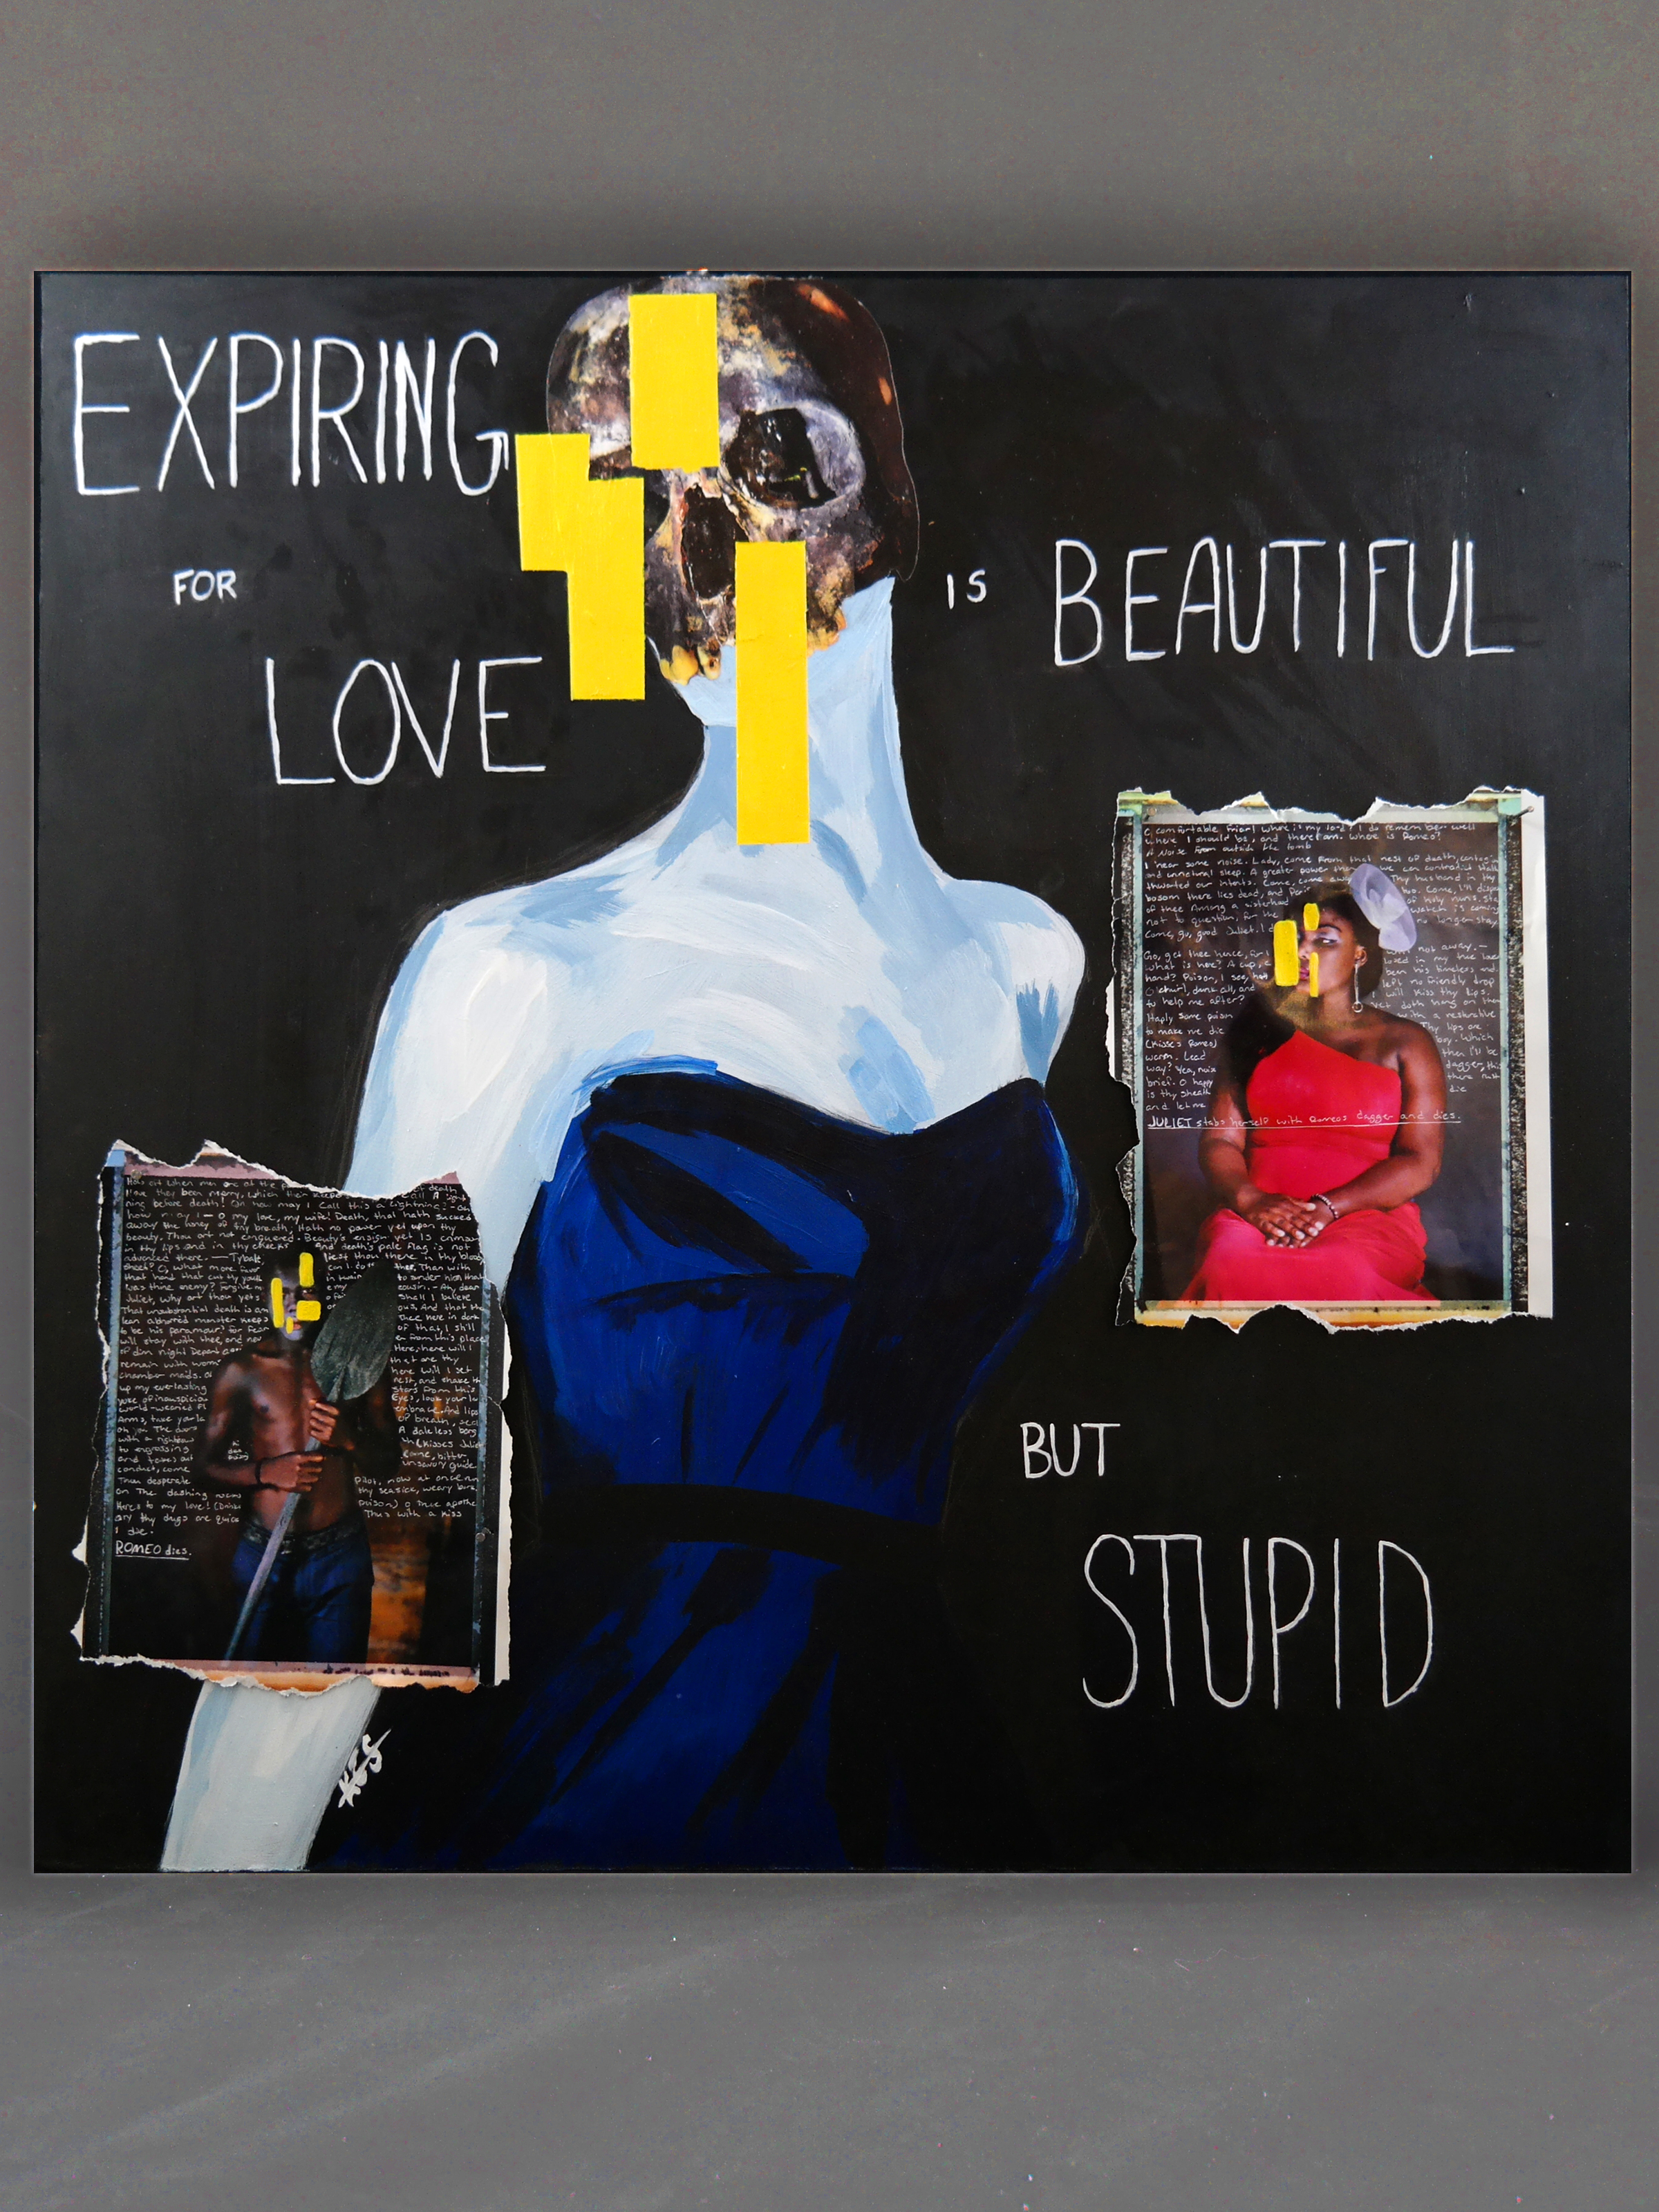 Expiring for love is beautiful but stupid.